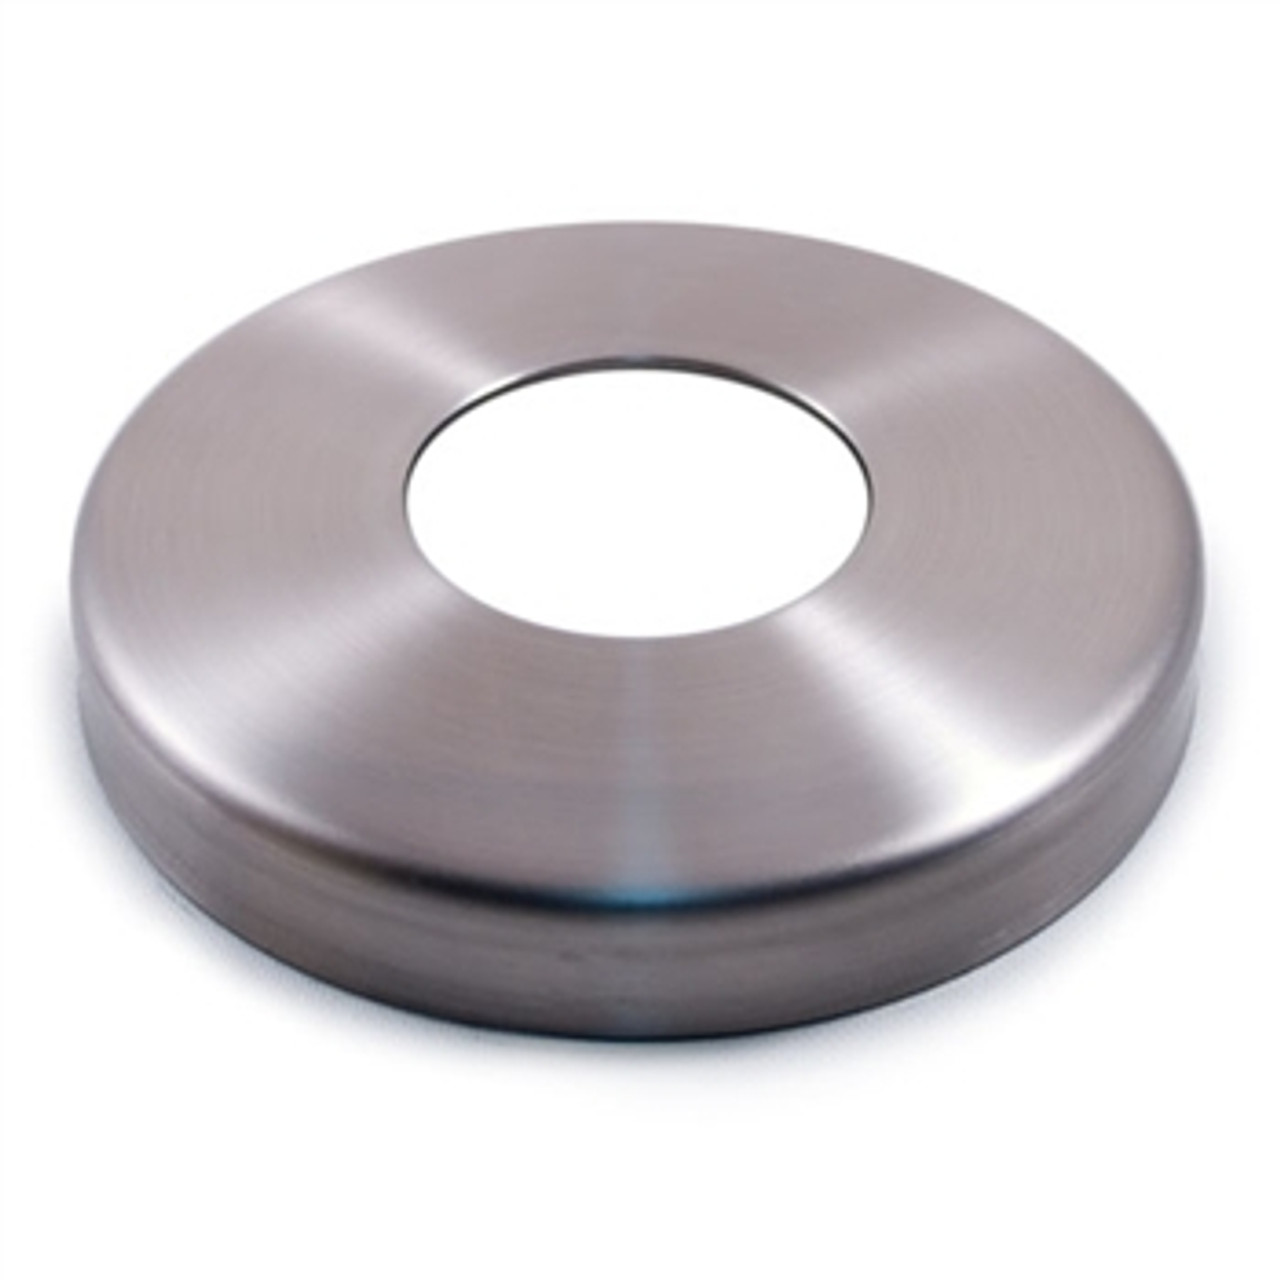 """E0183 Stainless Steel Flange Canopy, 37/64"""" Diameter Hole"""